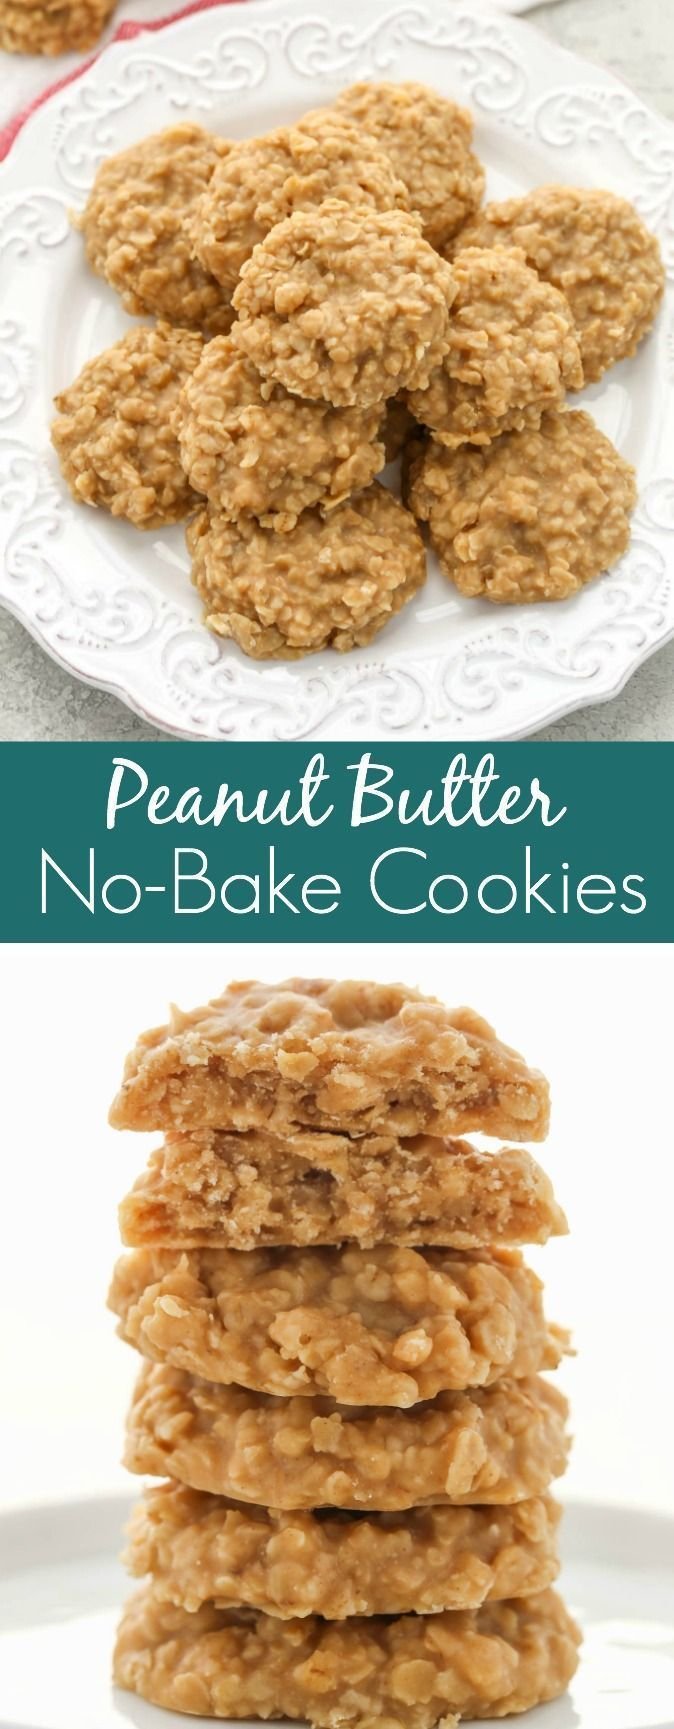 These Peanut Butter No-Bake Cookies are full of pe…